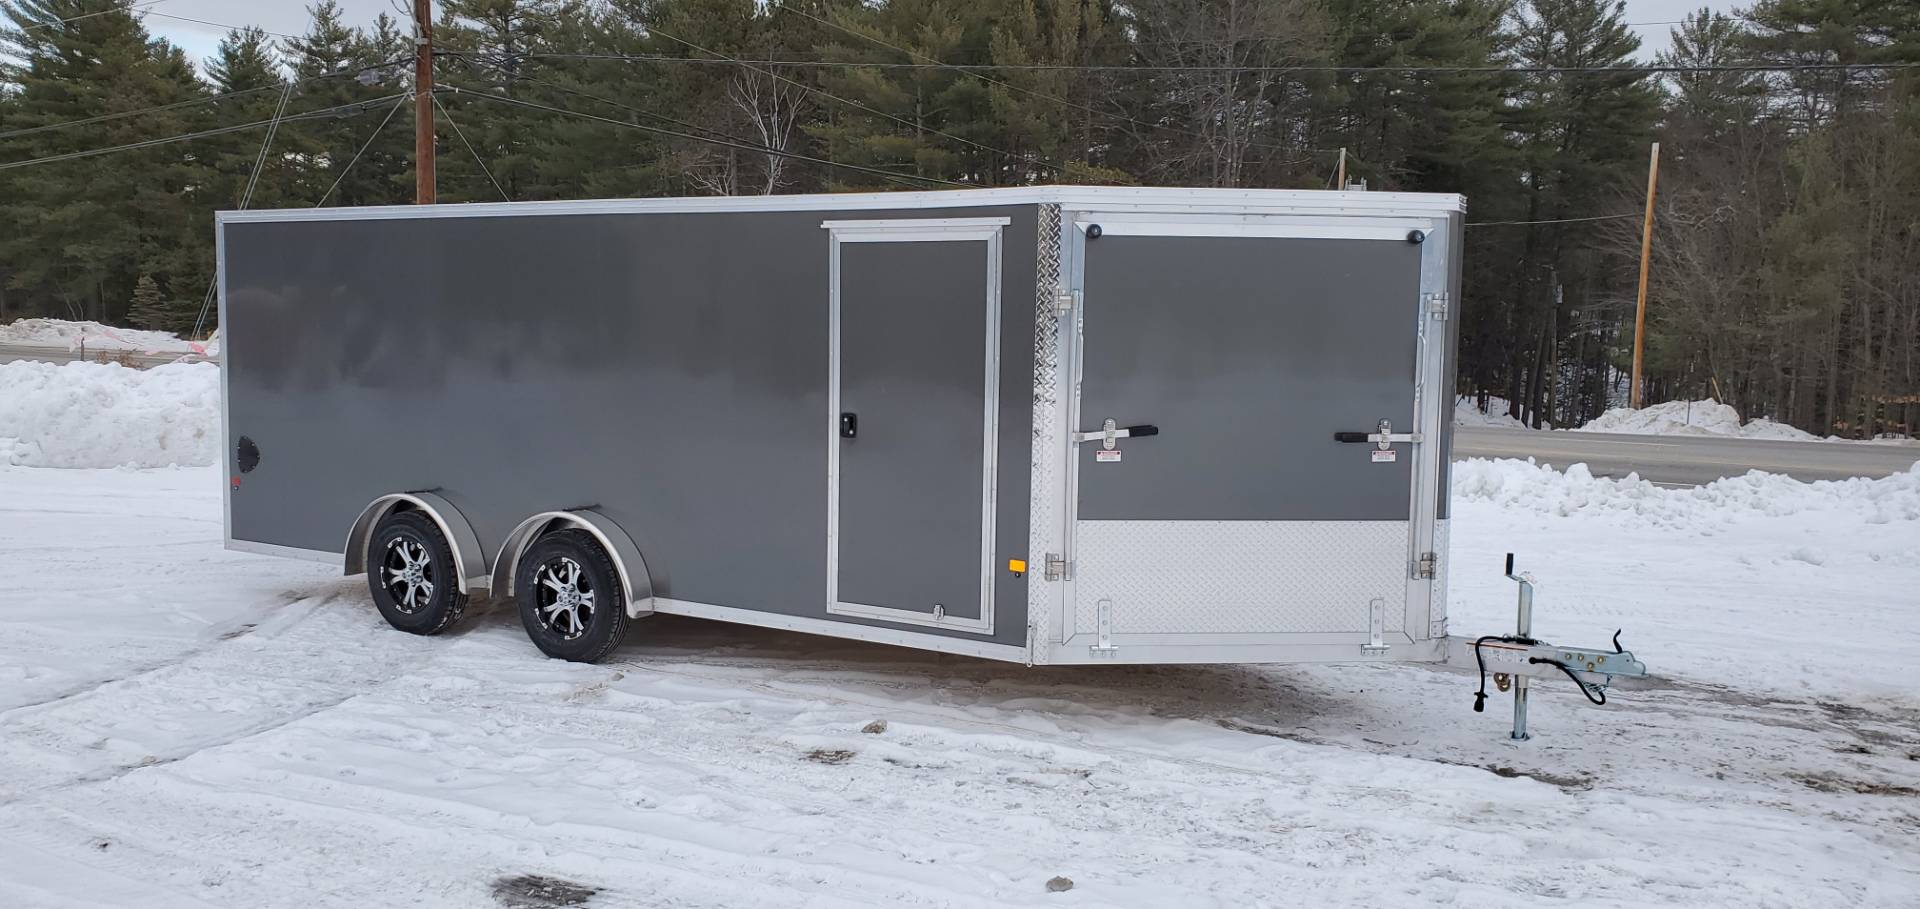 2020 Mission Trailers EZES7.5X18 LIMITED in Tamworth, New Hampshire - Photo 1